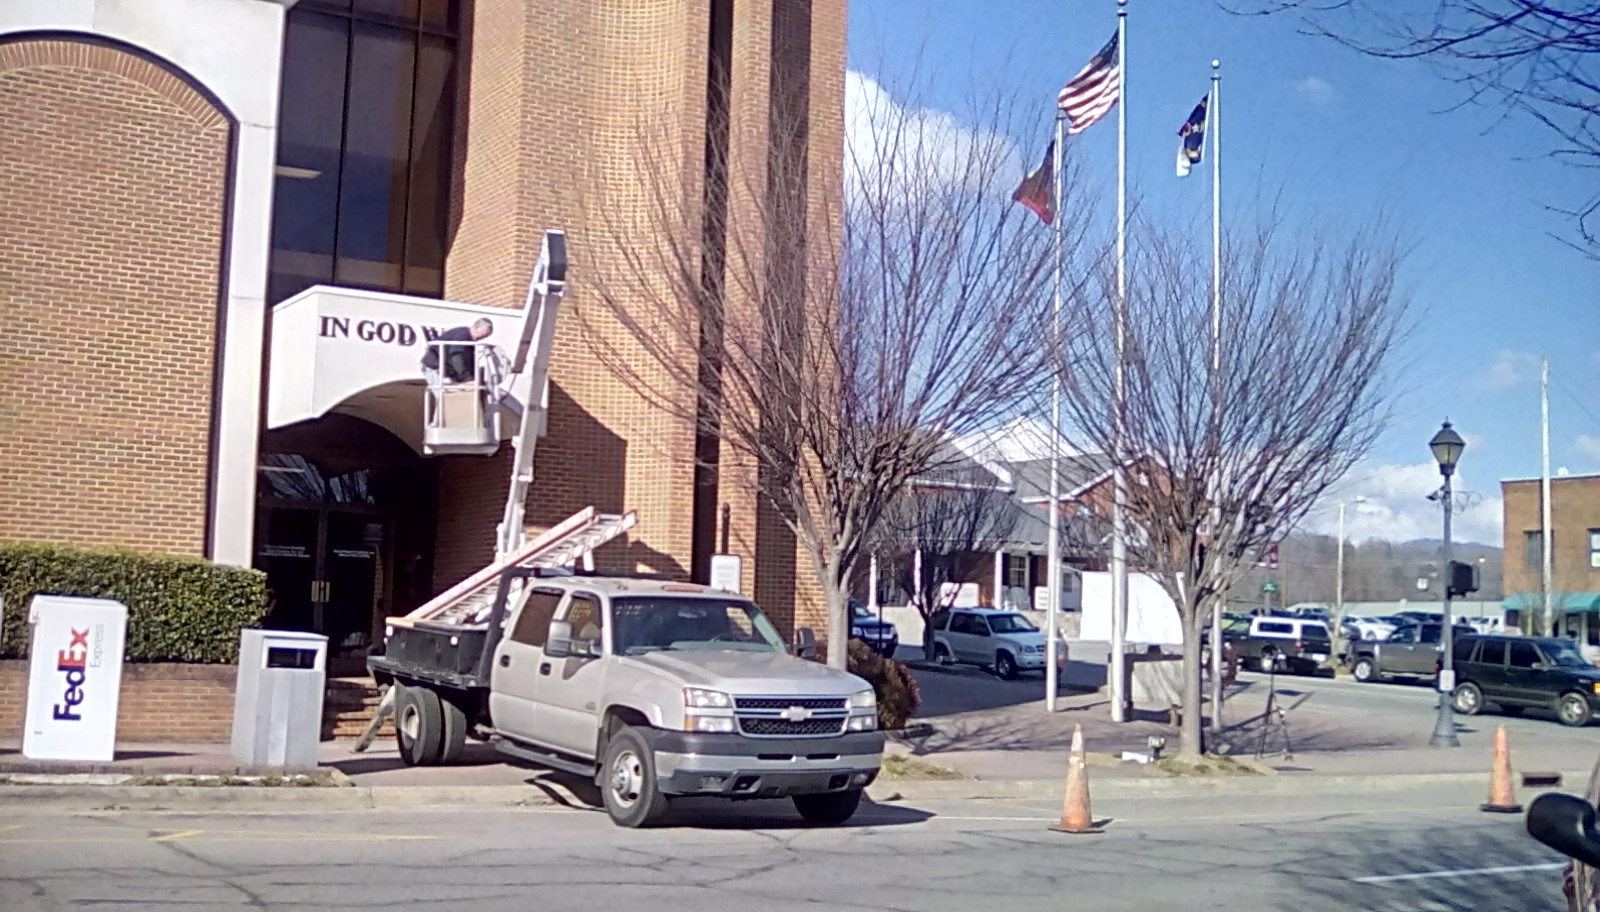 US Motto being installed on side entrance of courthouse